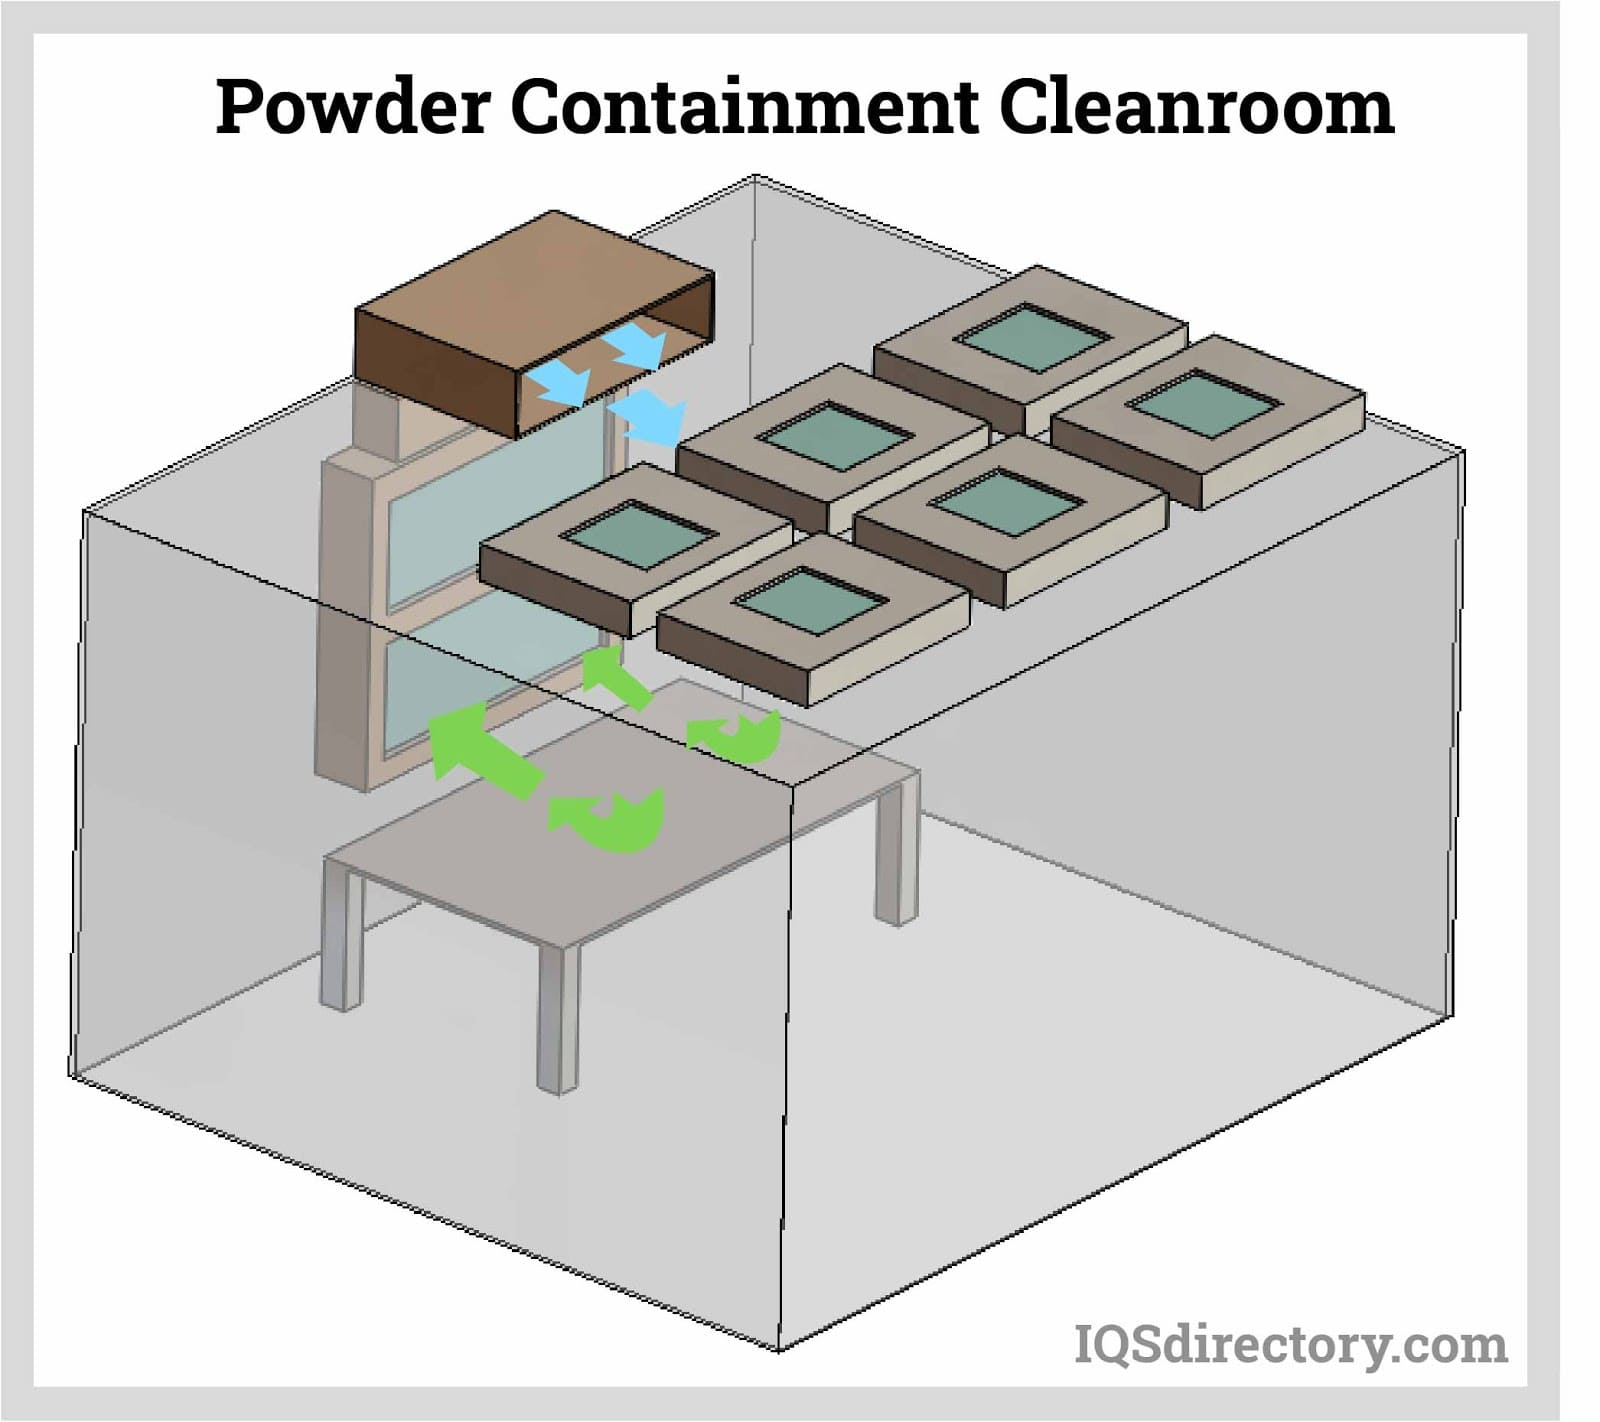 Powder Containment Cleanroom